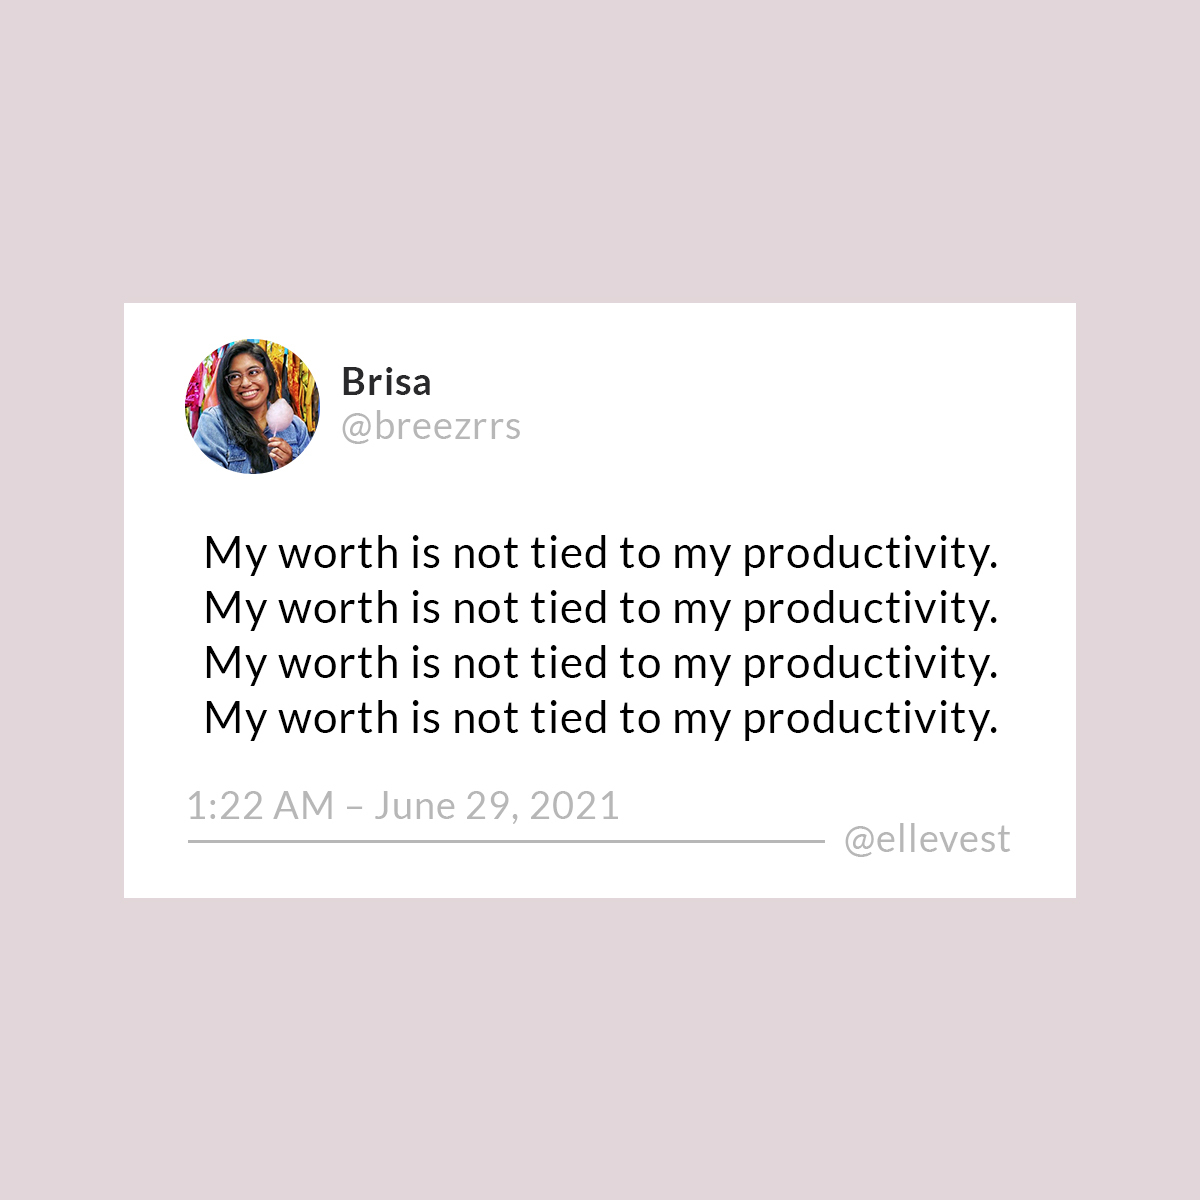 """Tweet by @breezrrs that repeats the line """"My worth is not tied to my productivity"""" four times."""